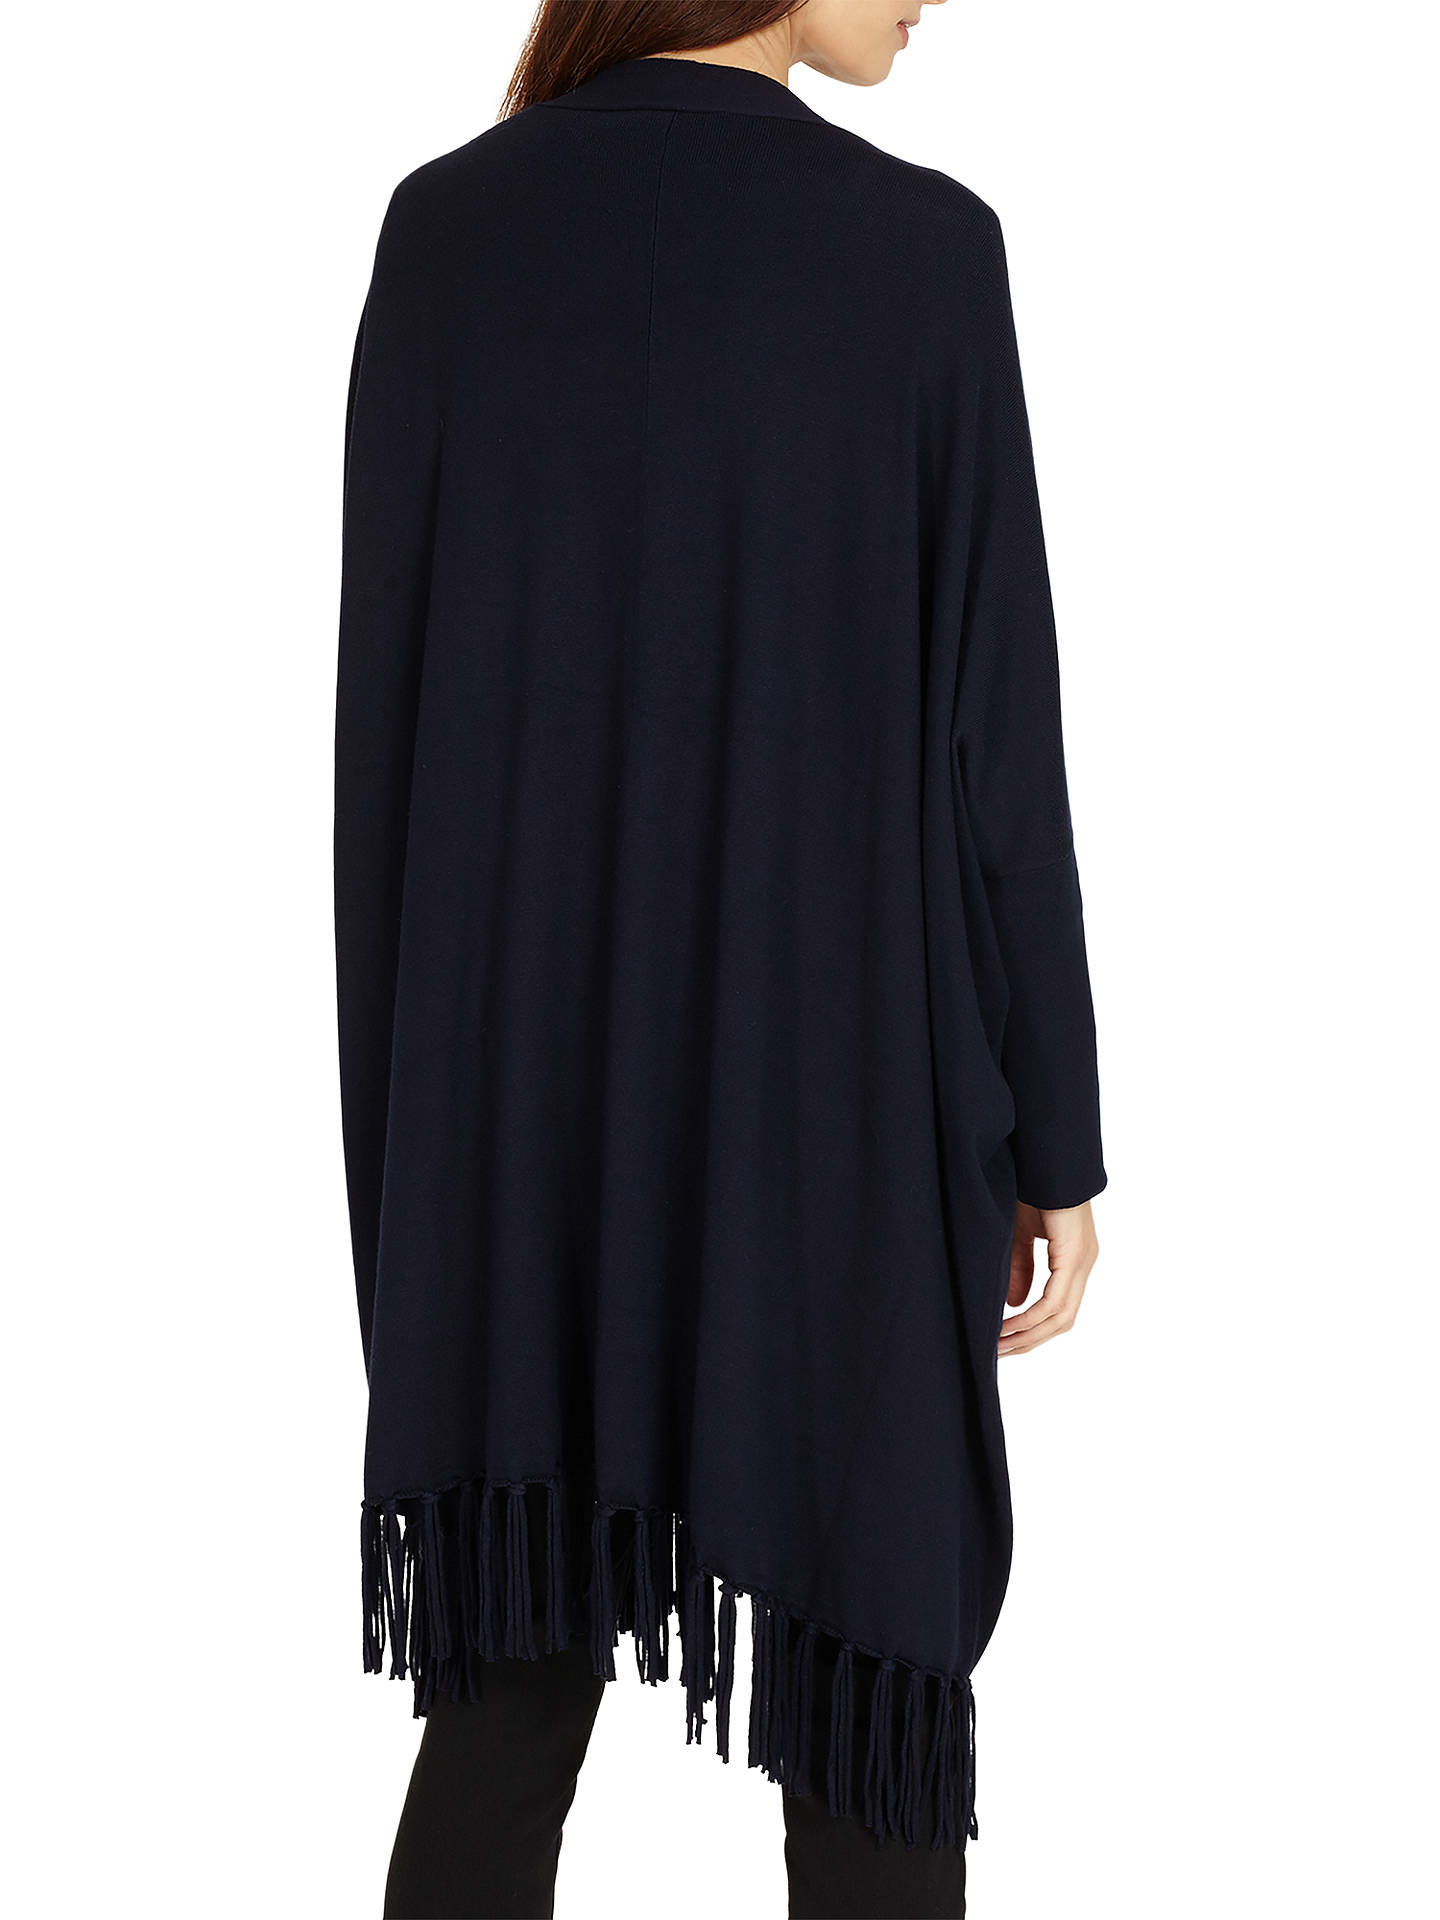 BuyPhase Eight Tassel Hem Cardigan, Navy, XS Online at johnlewis.com